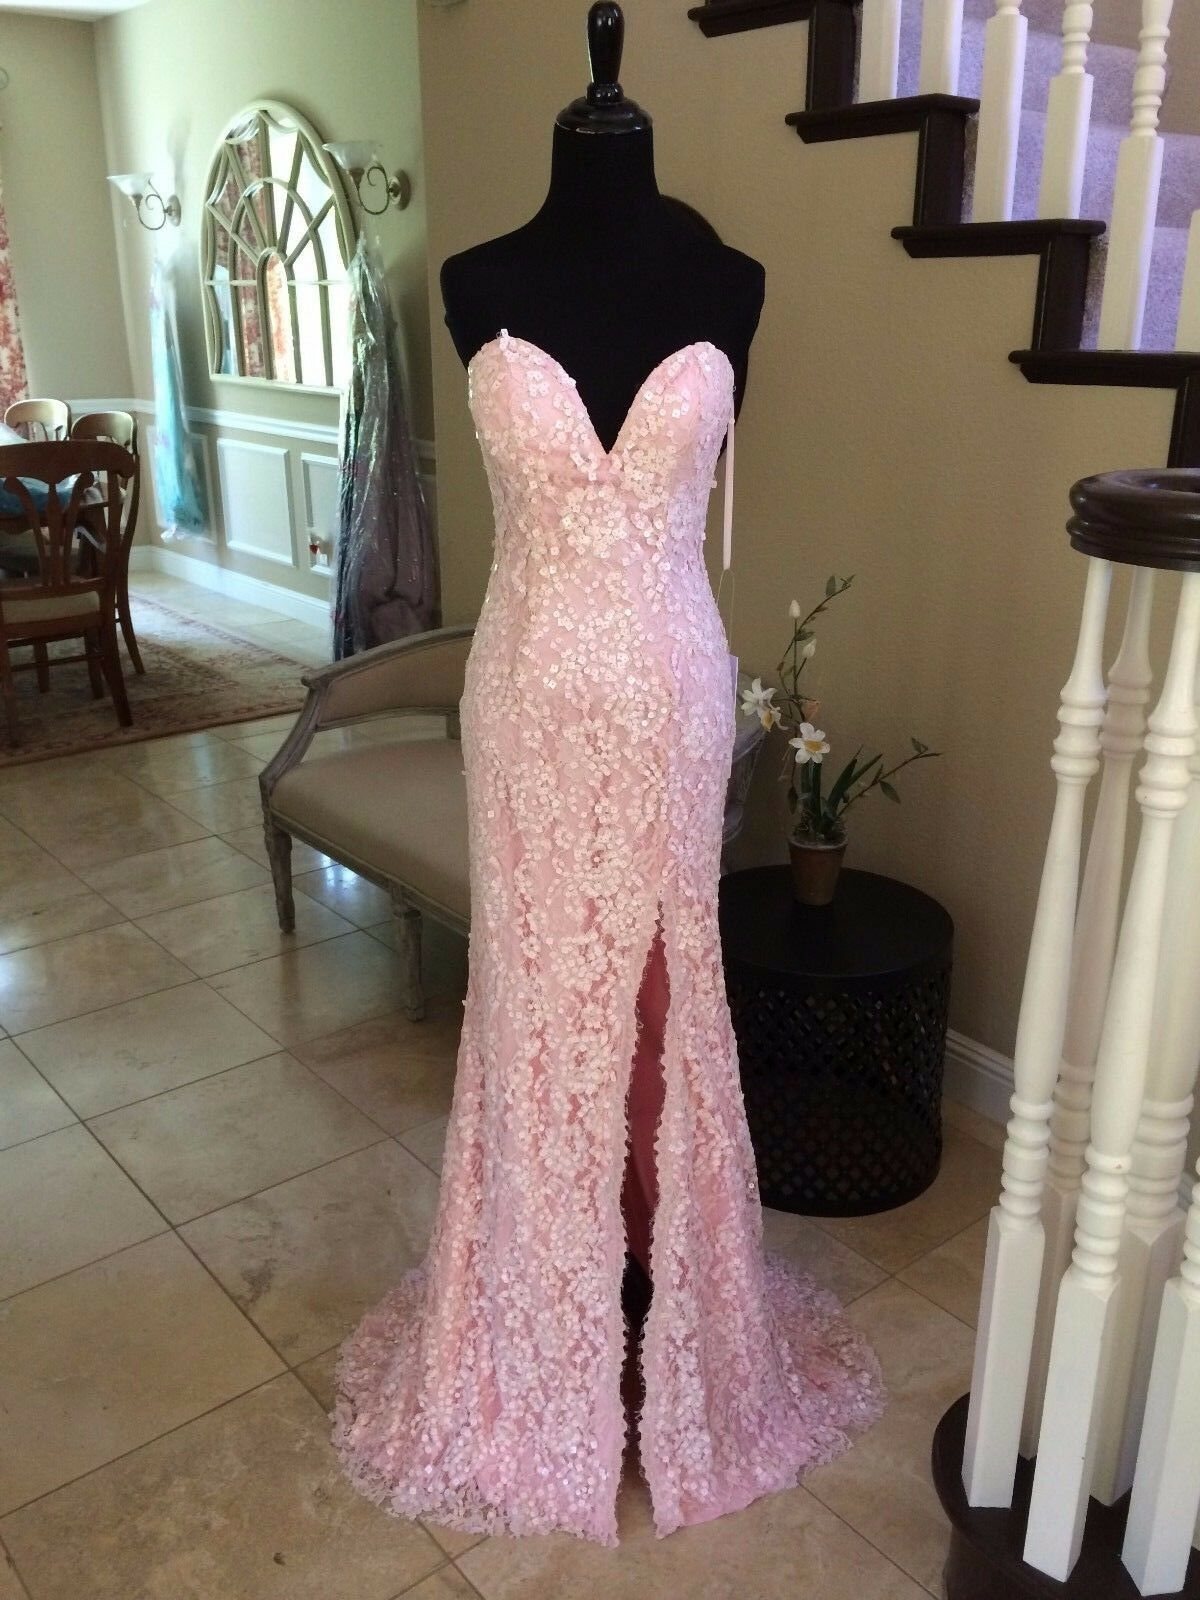 750 NWT LIGHT PINK LACE JOVANI PROM PAGEANT FORMAL DRESS GOWN SIZE 6